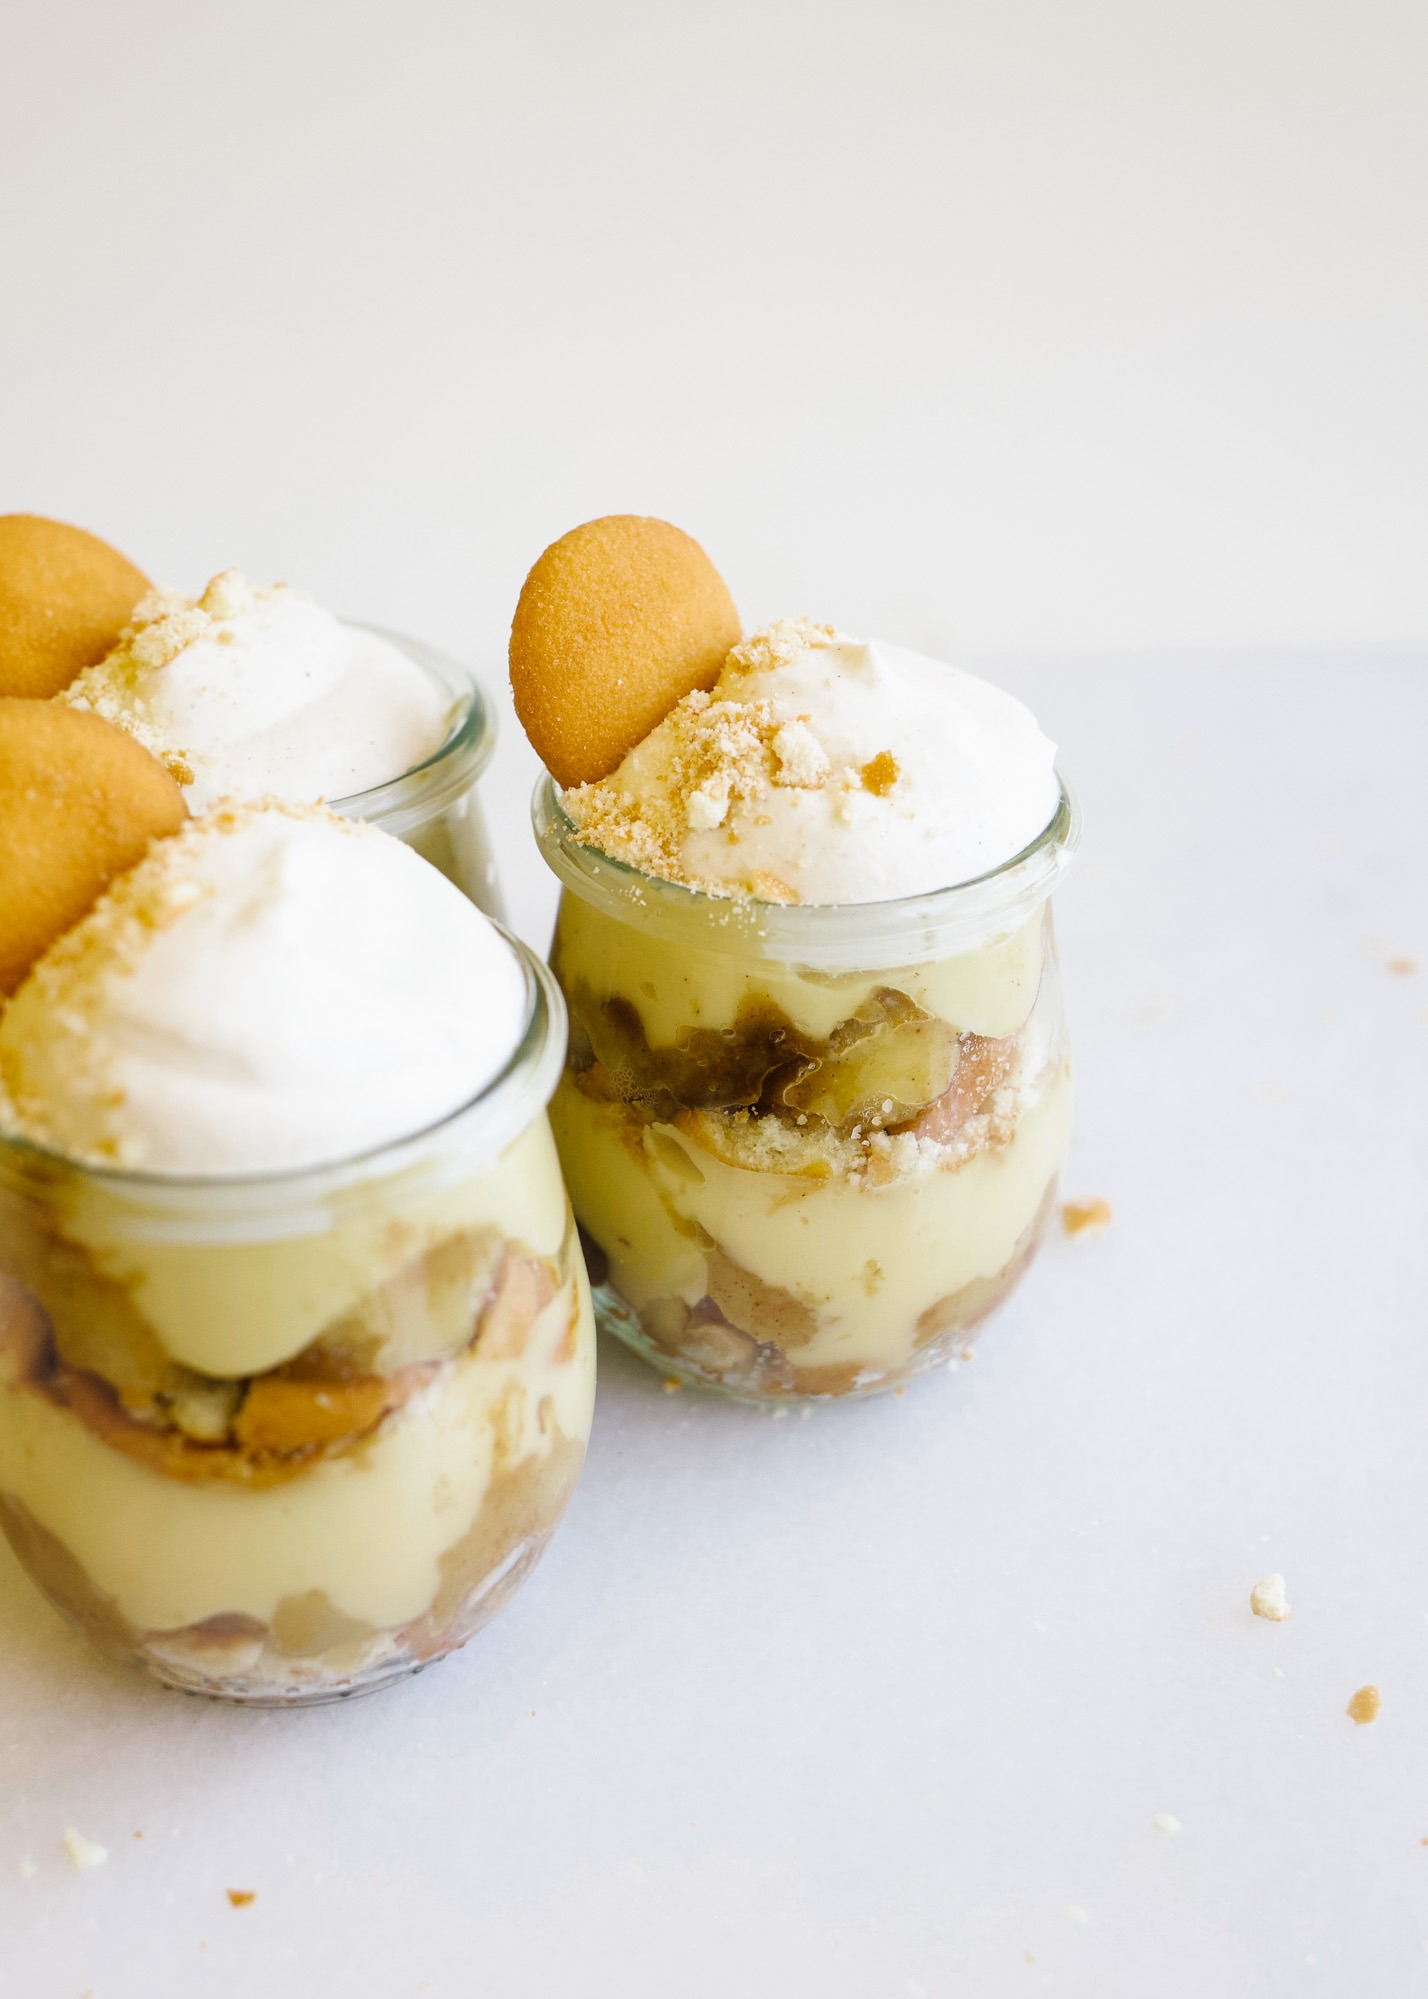 Caramelized Banana Pudding by Wood and Spoon blog. This is a traditional Southern style banana pudding dessert made with vanilla wafers, whipped cream, and caramelized bananas. The cinnamon-scented syrup of the bananas adds great flavors and makes for a fun alternative to banana pudding. Serve these in whole containers or miniature individual jars. Learn more about this summer dessert on thewoodandspoon.com